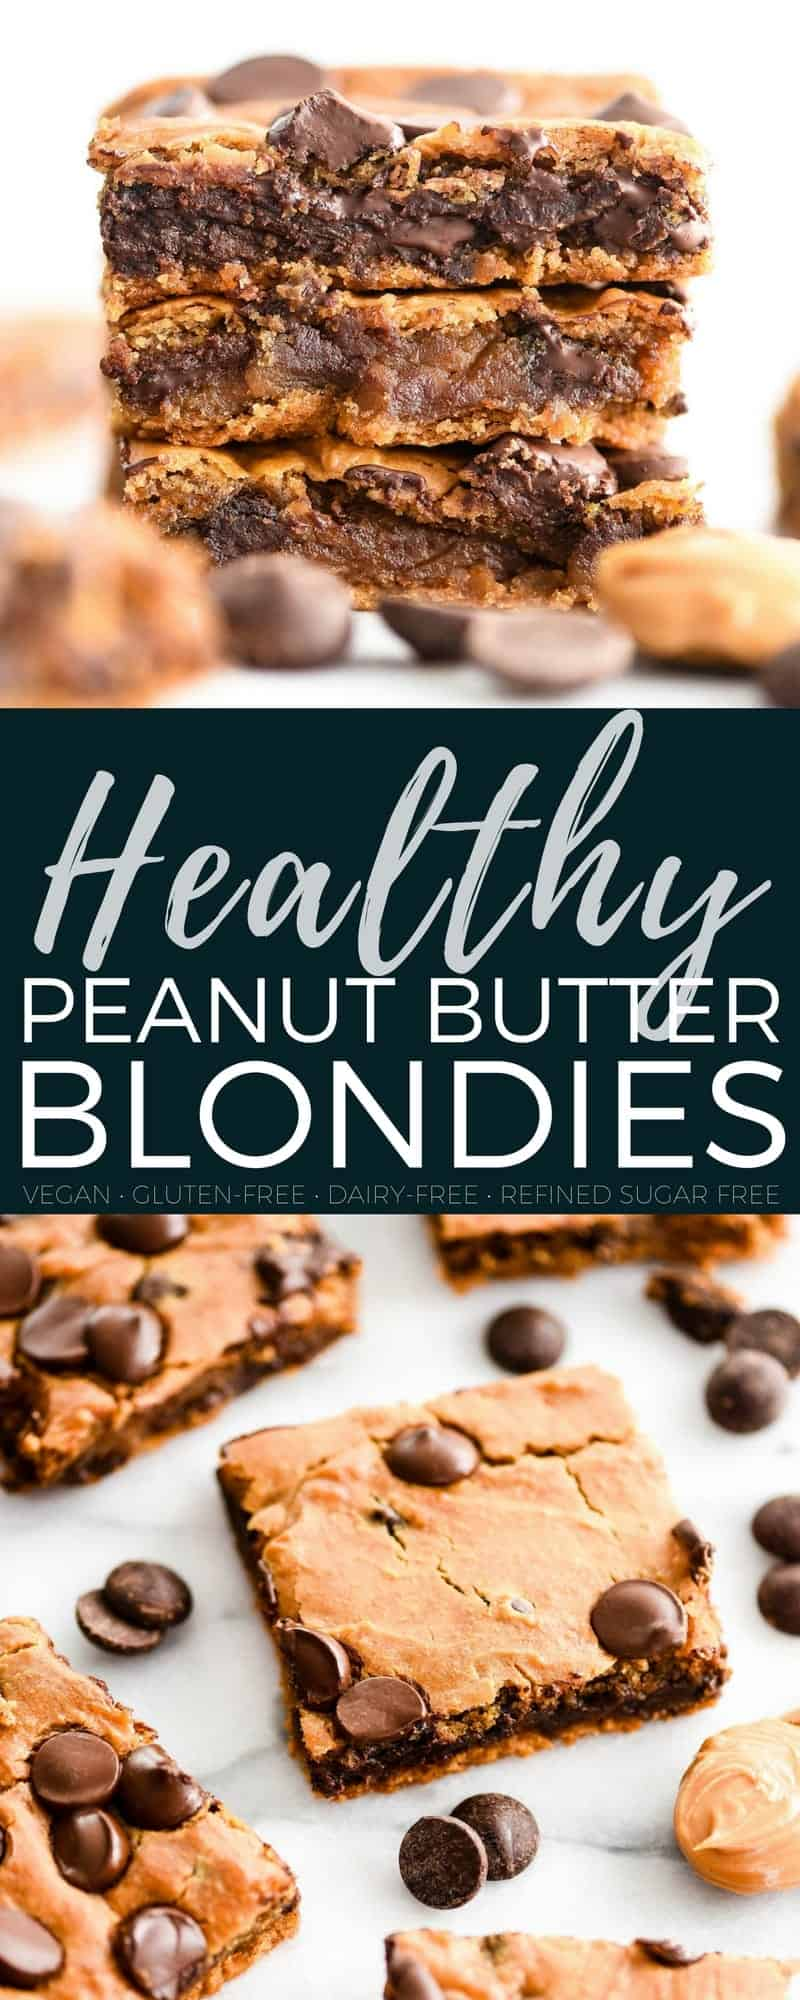 These Healthy Peanut Butter Blondies are gluten-free, dairy-free, refined-sugar free and vegan friendly! Made with chickpeas but you'd never know it! It's the perfect healthy dessert recipe that you can feel great about indulging in! #blondies #peanutbutter #healthy #recipe #baking #glutenfree #dairyfree #vegan #refinedsugarfree